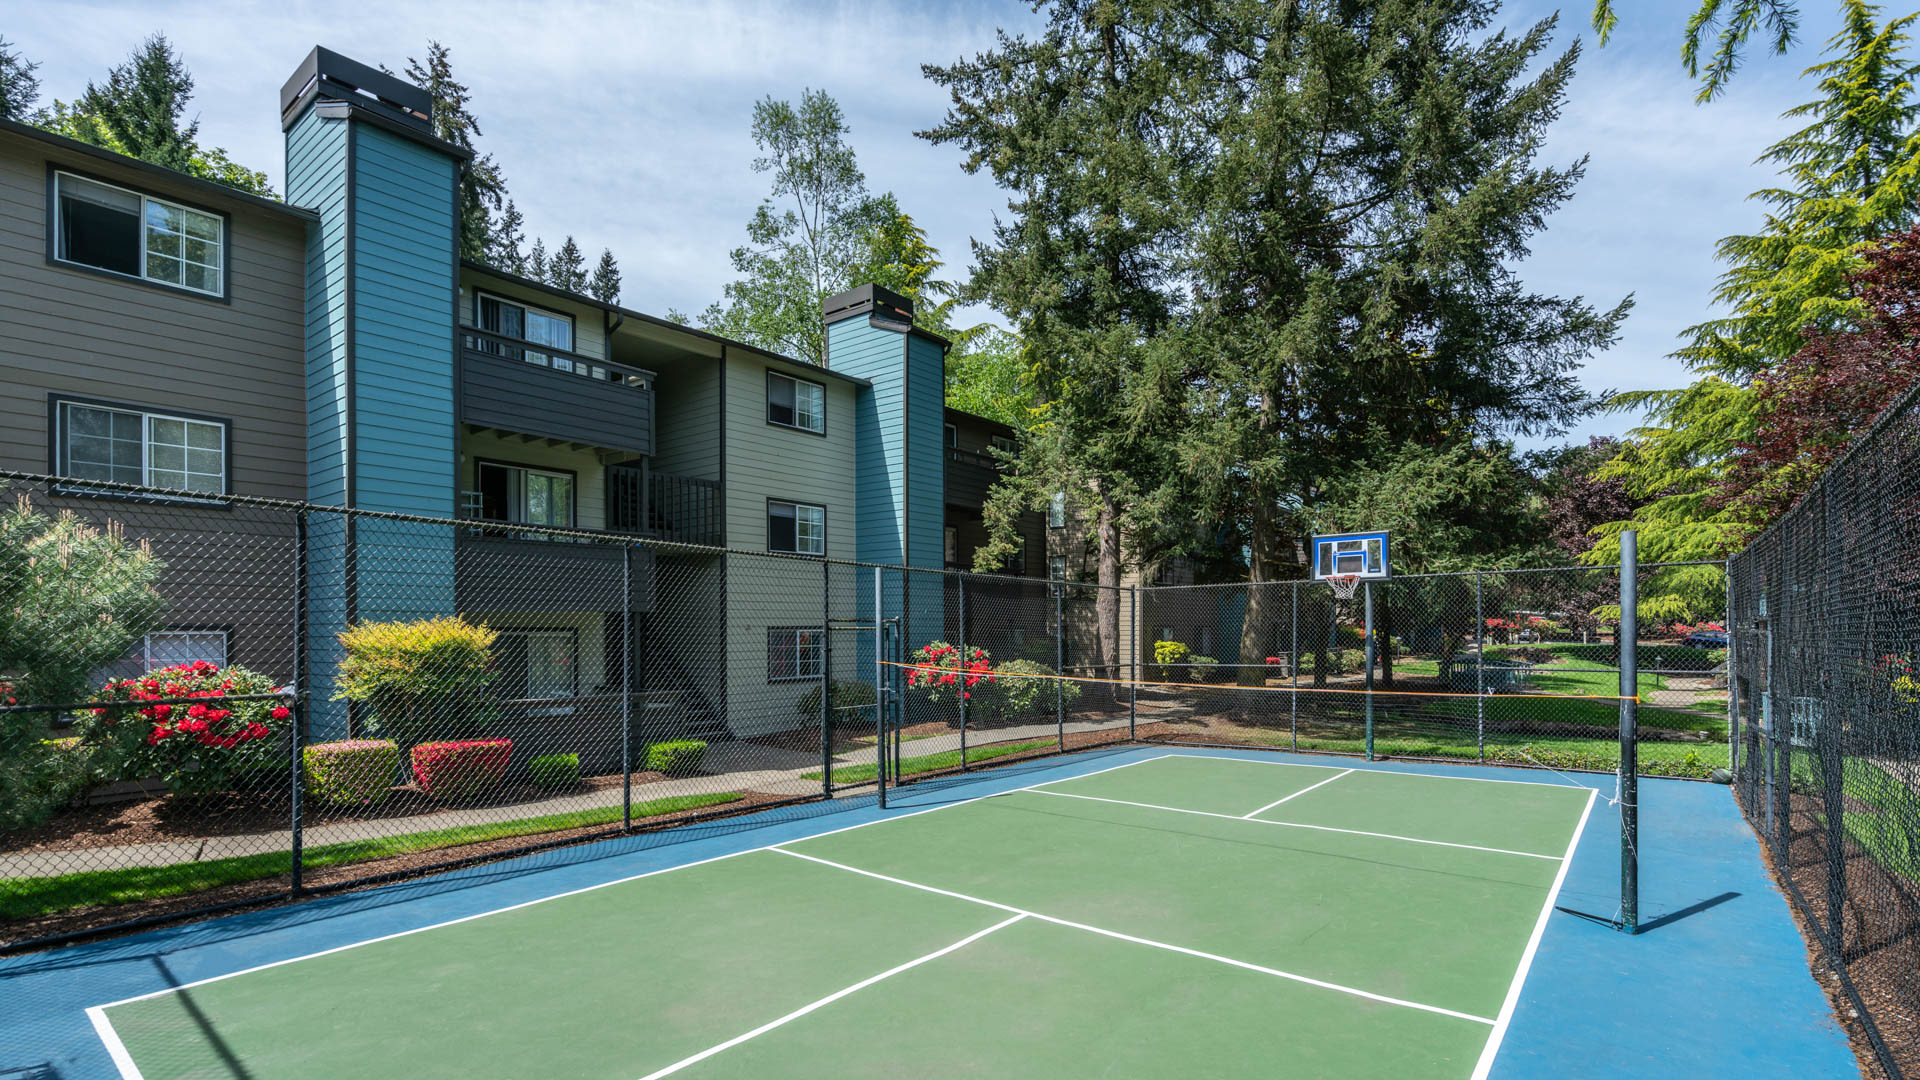 Surrey Downs Apartments - Tennis Court